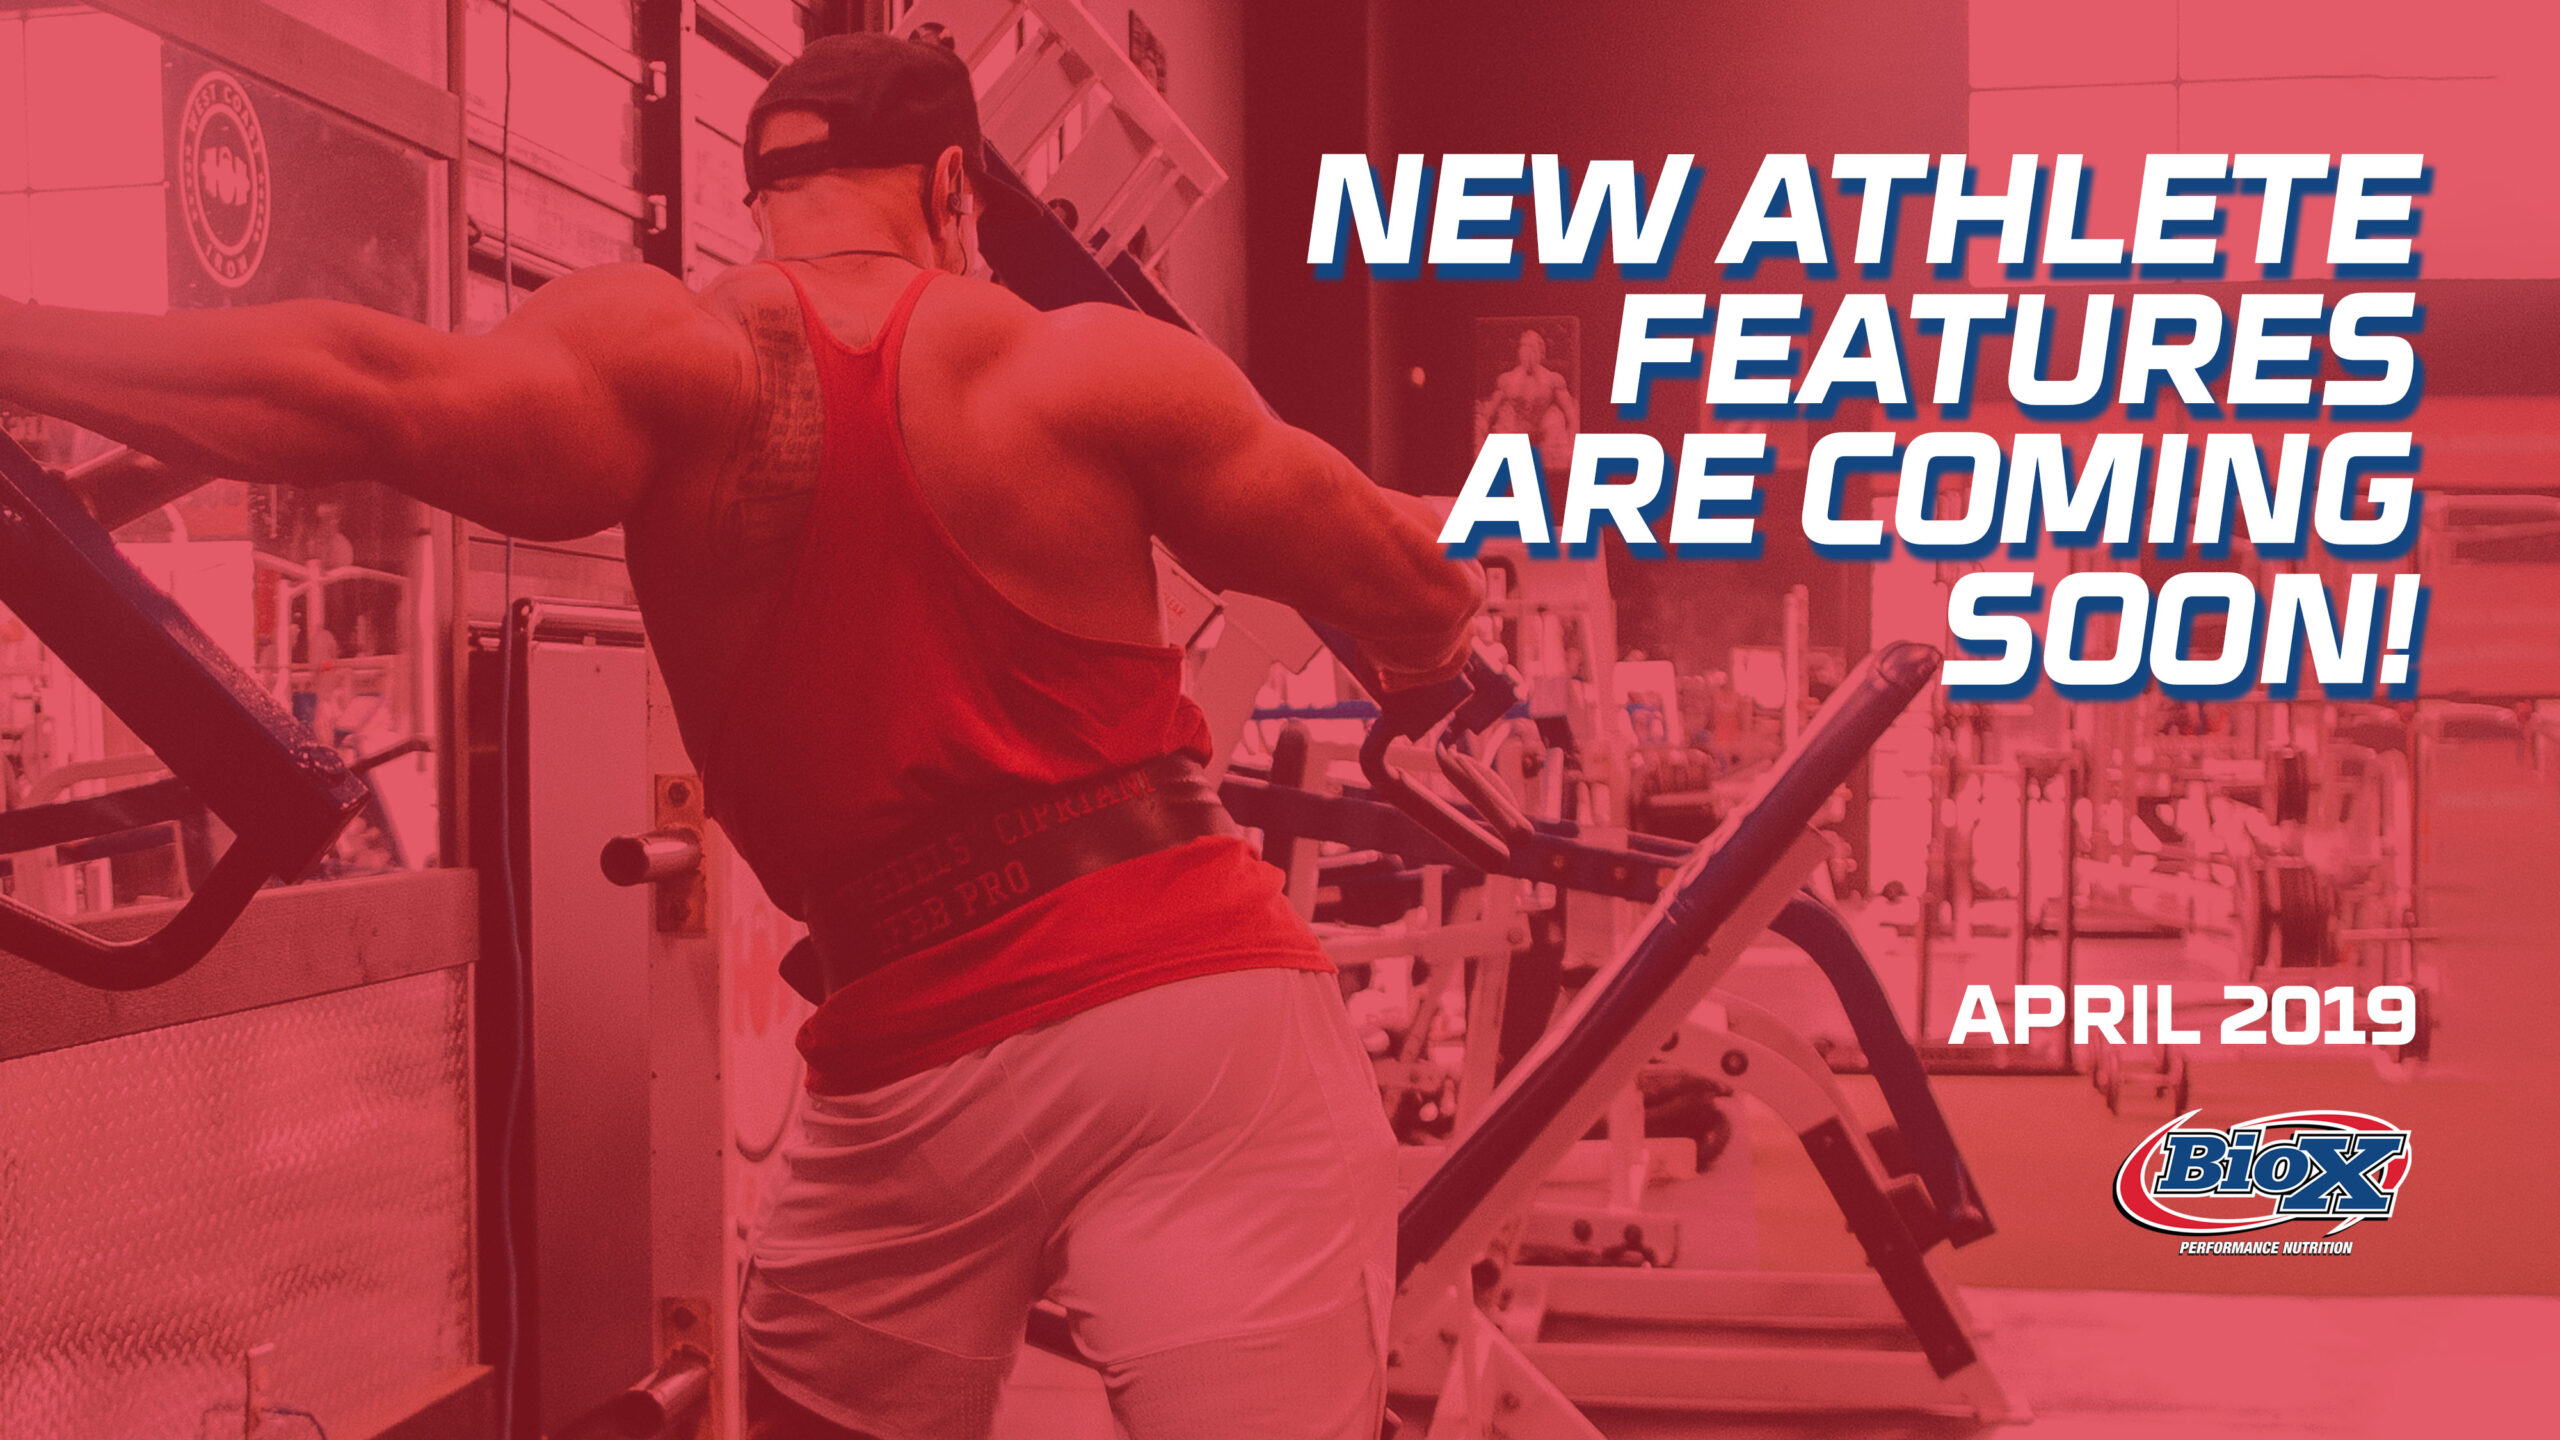 New Athlete Features Coming Soon